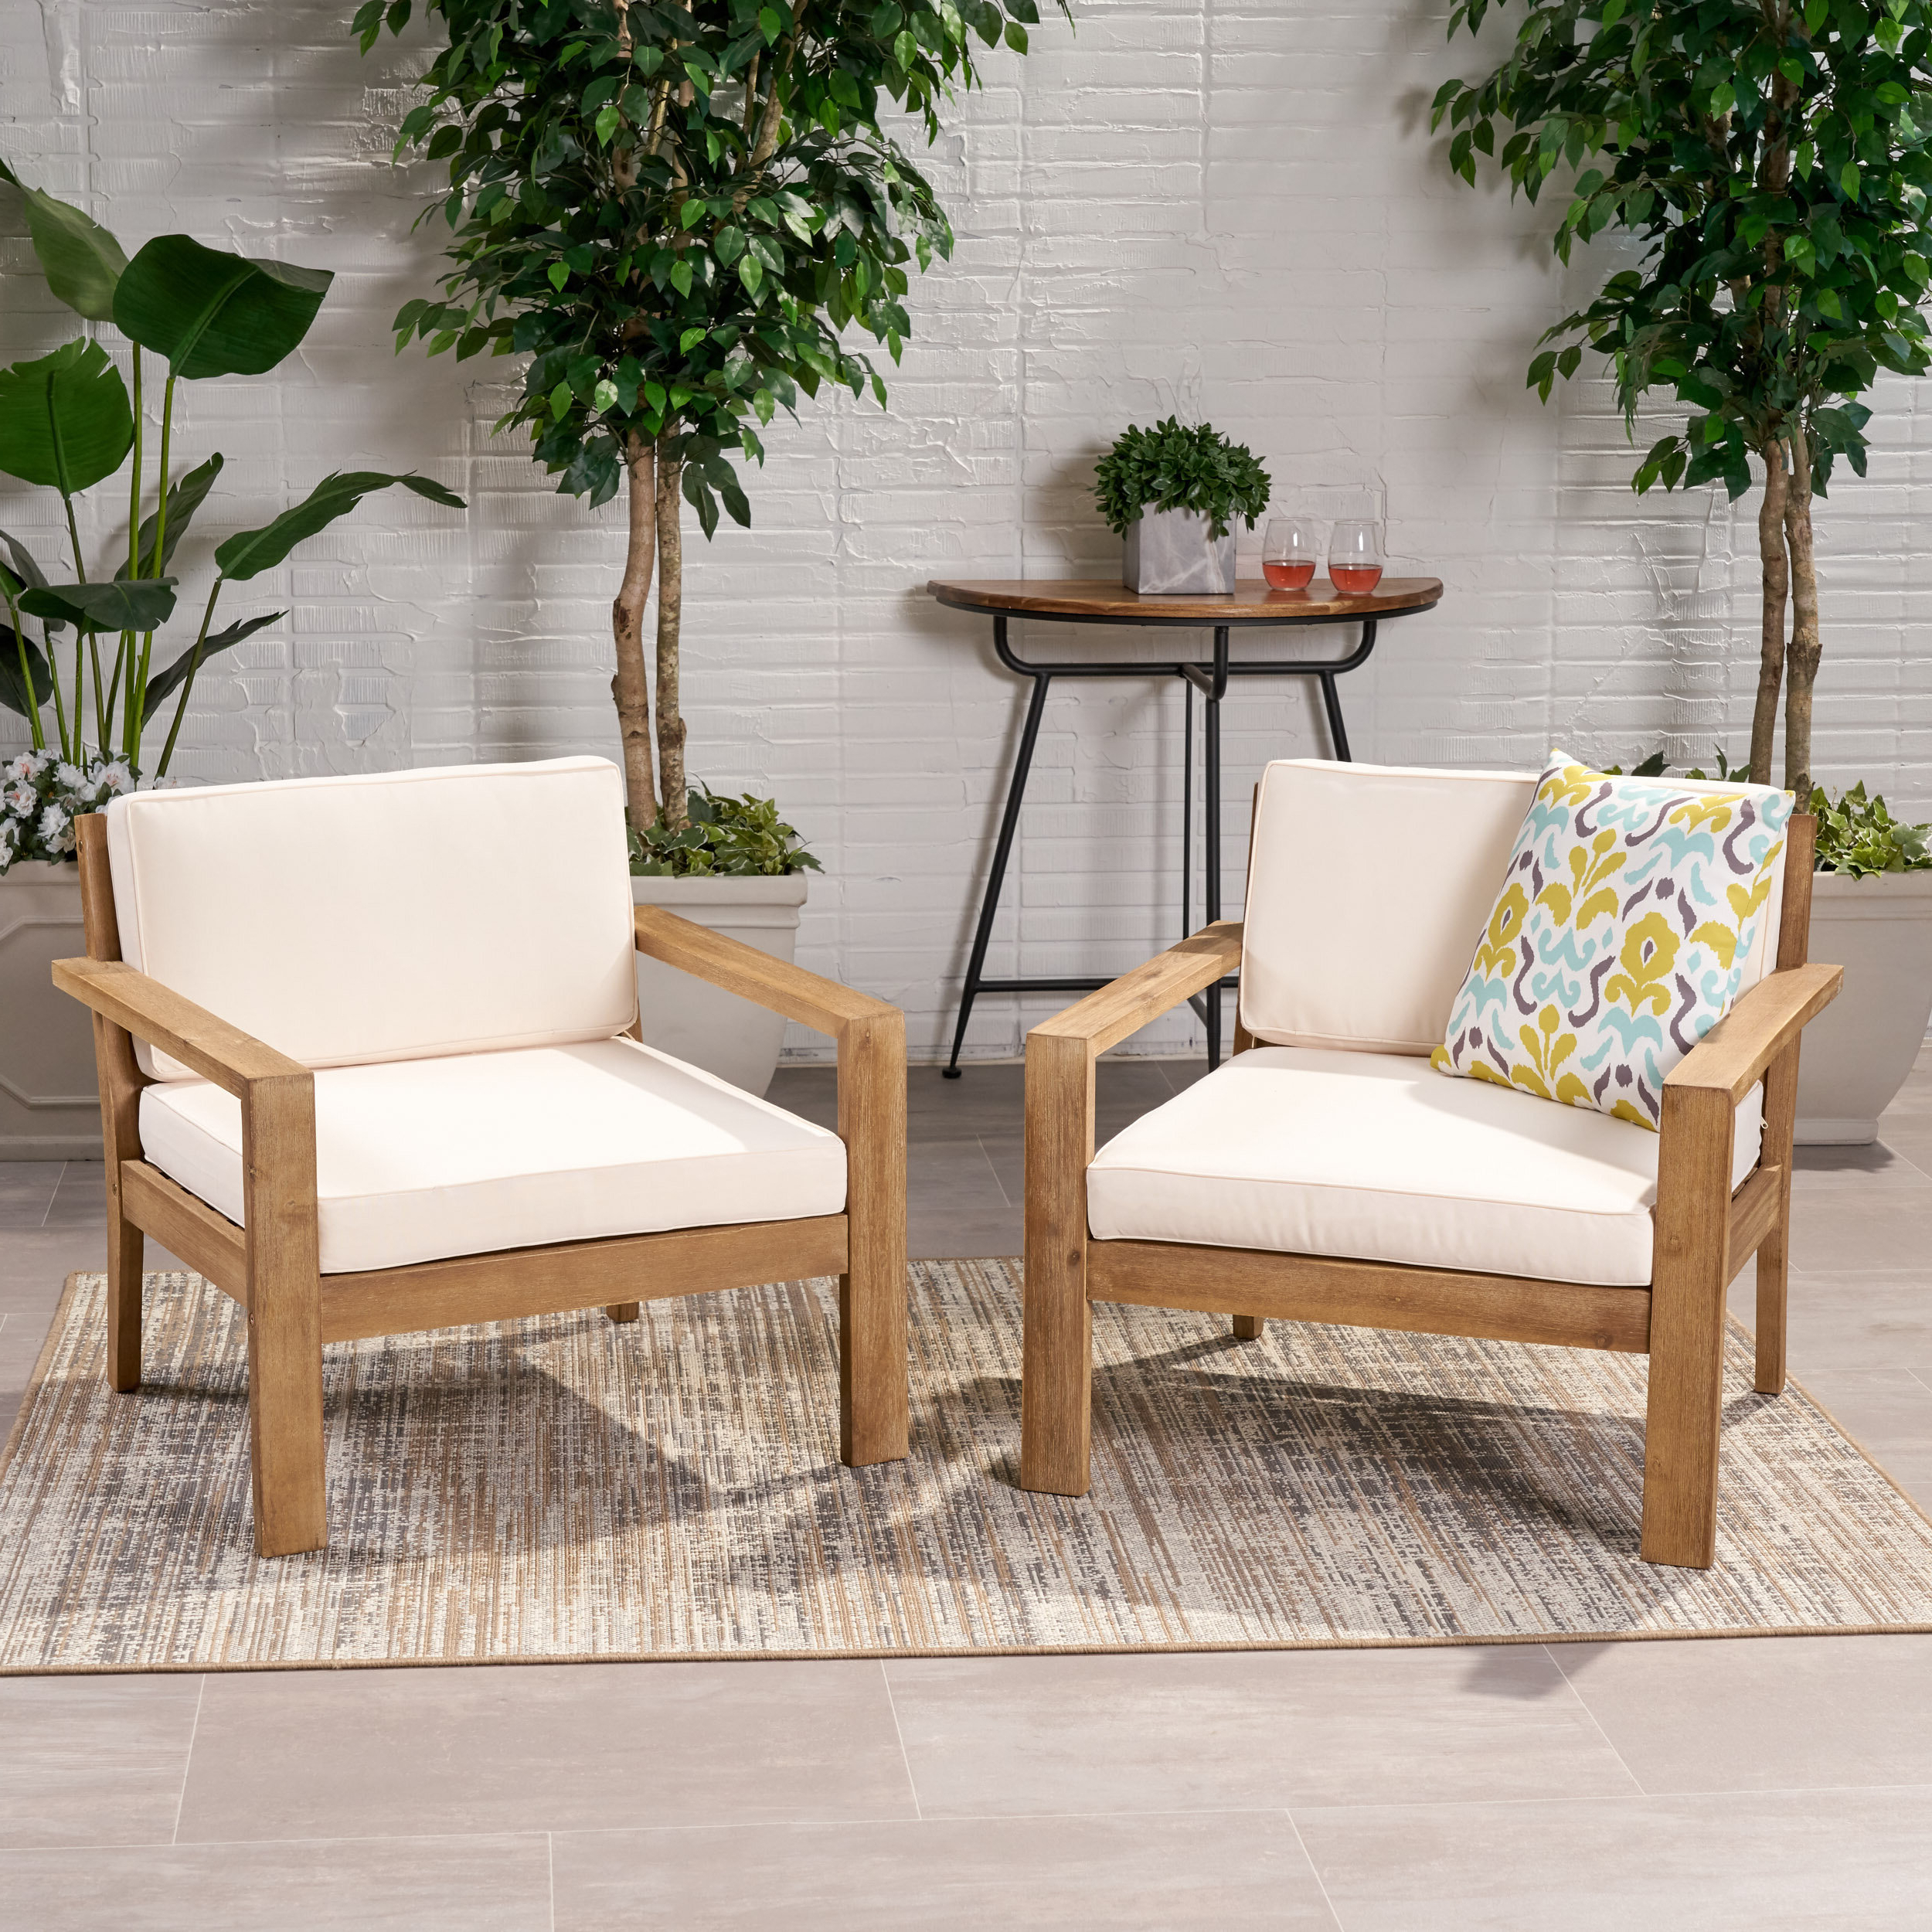 Seaham Patio Sectionals With Cushions In 2020 Brayden Studio Seaham Patio Sectional With Cushions (View 11 of 20)